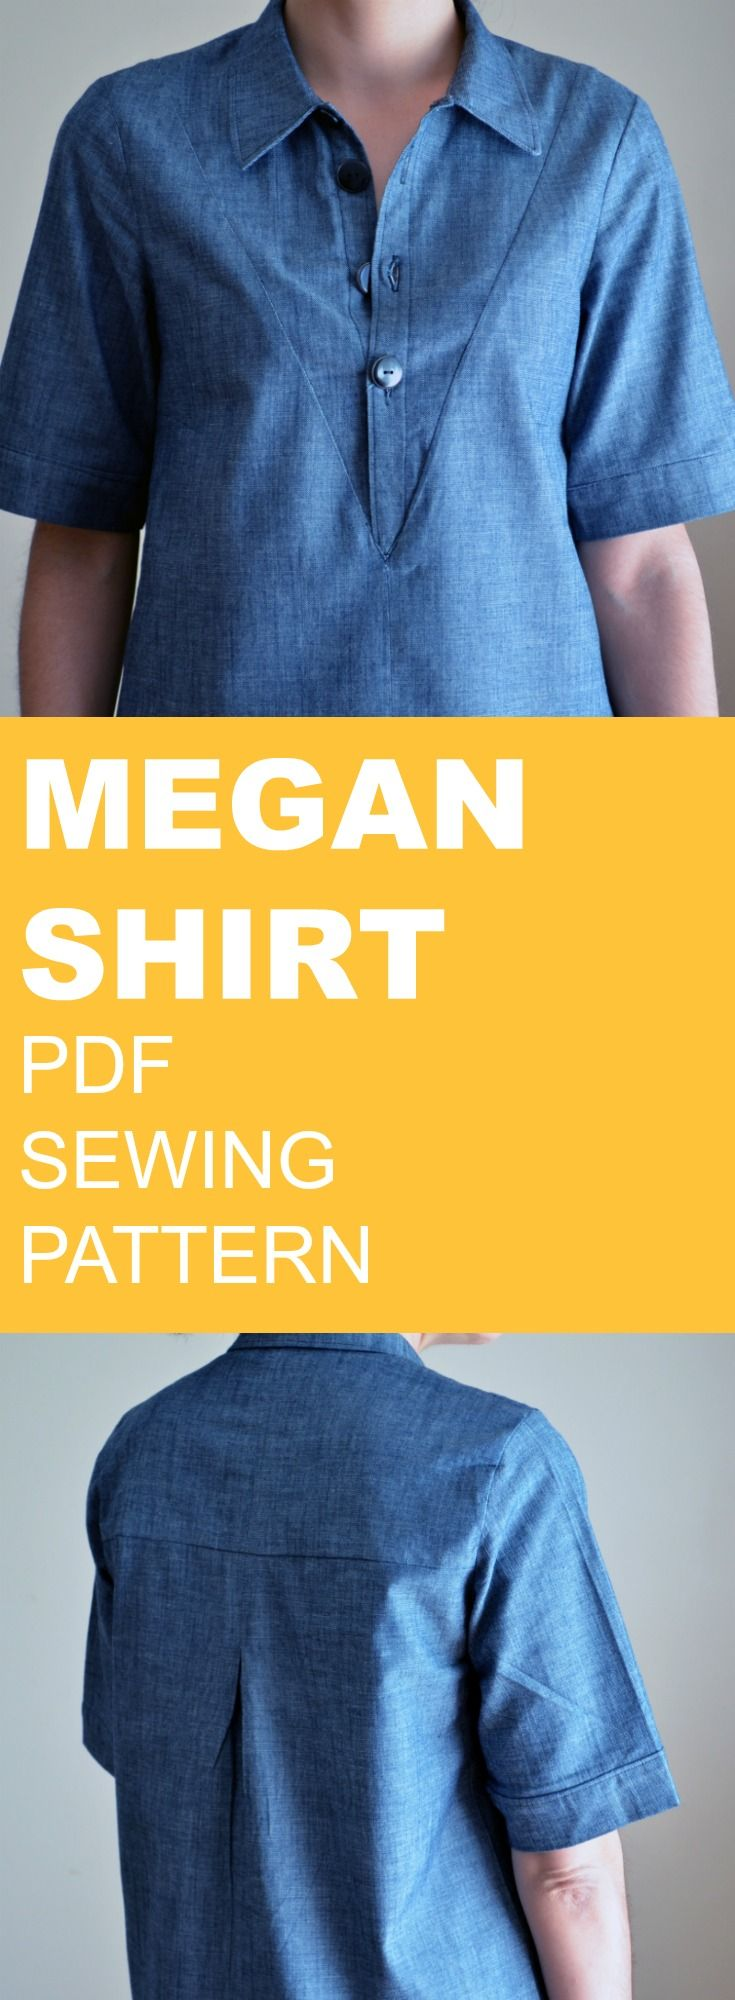 pattern cutting made easy pdf